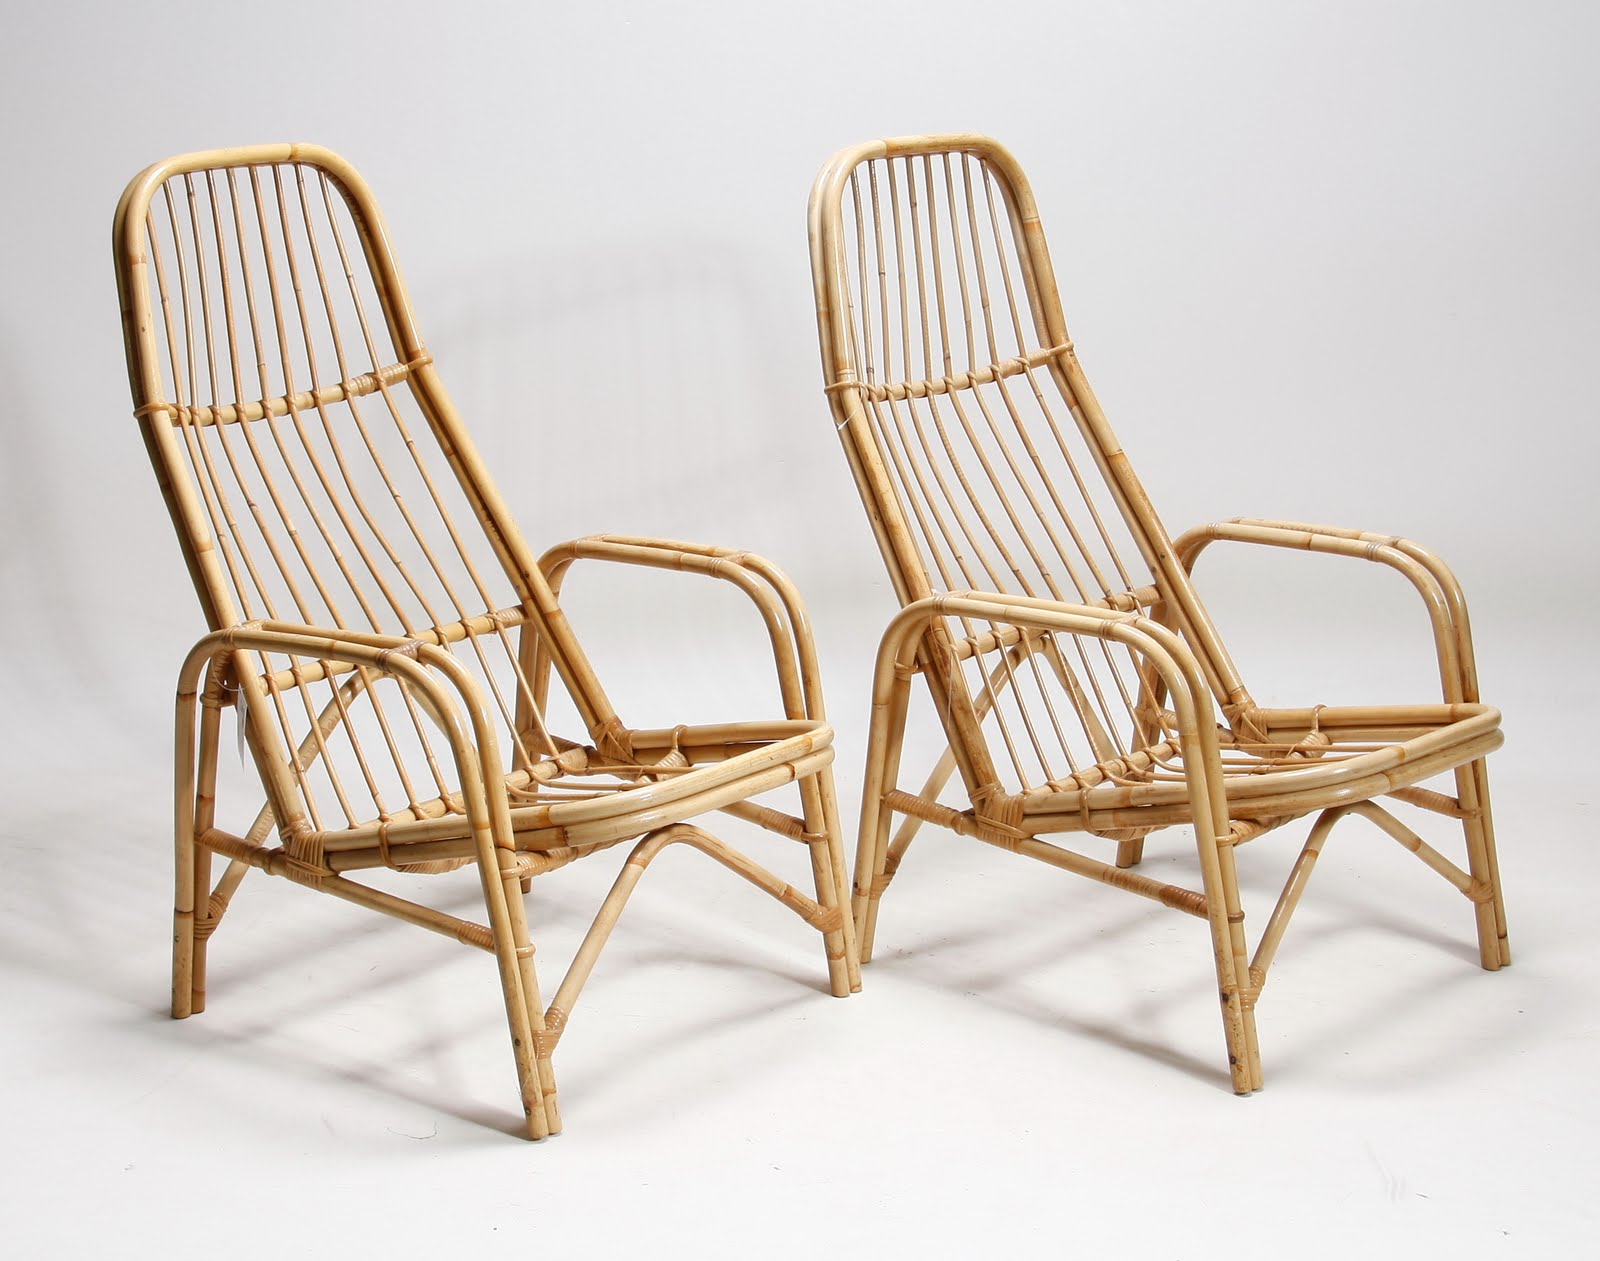 Cane Chairs Designs : Home Grooming: Rattan furniture